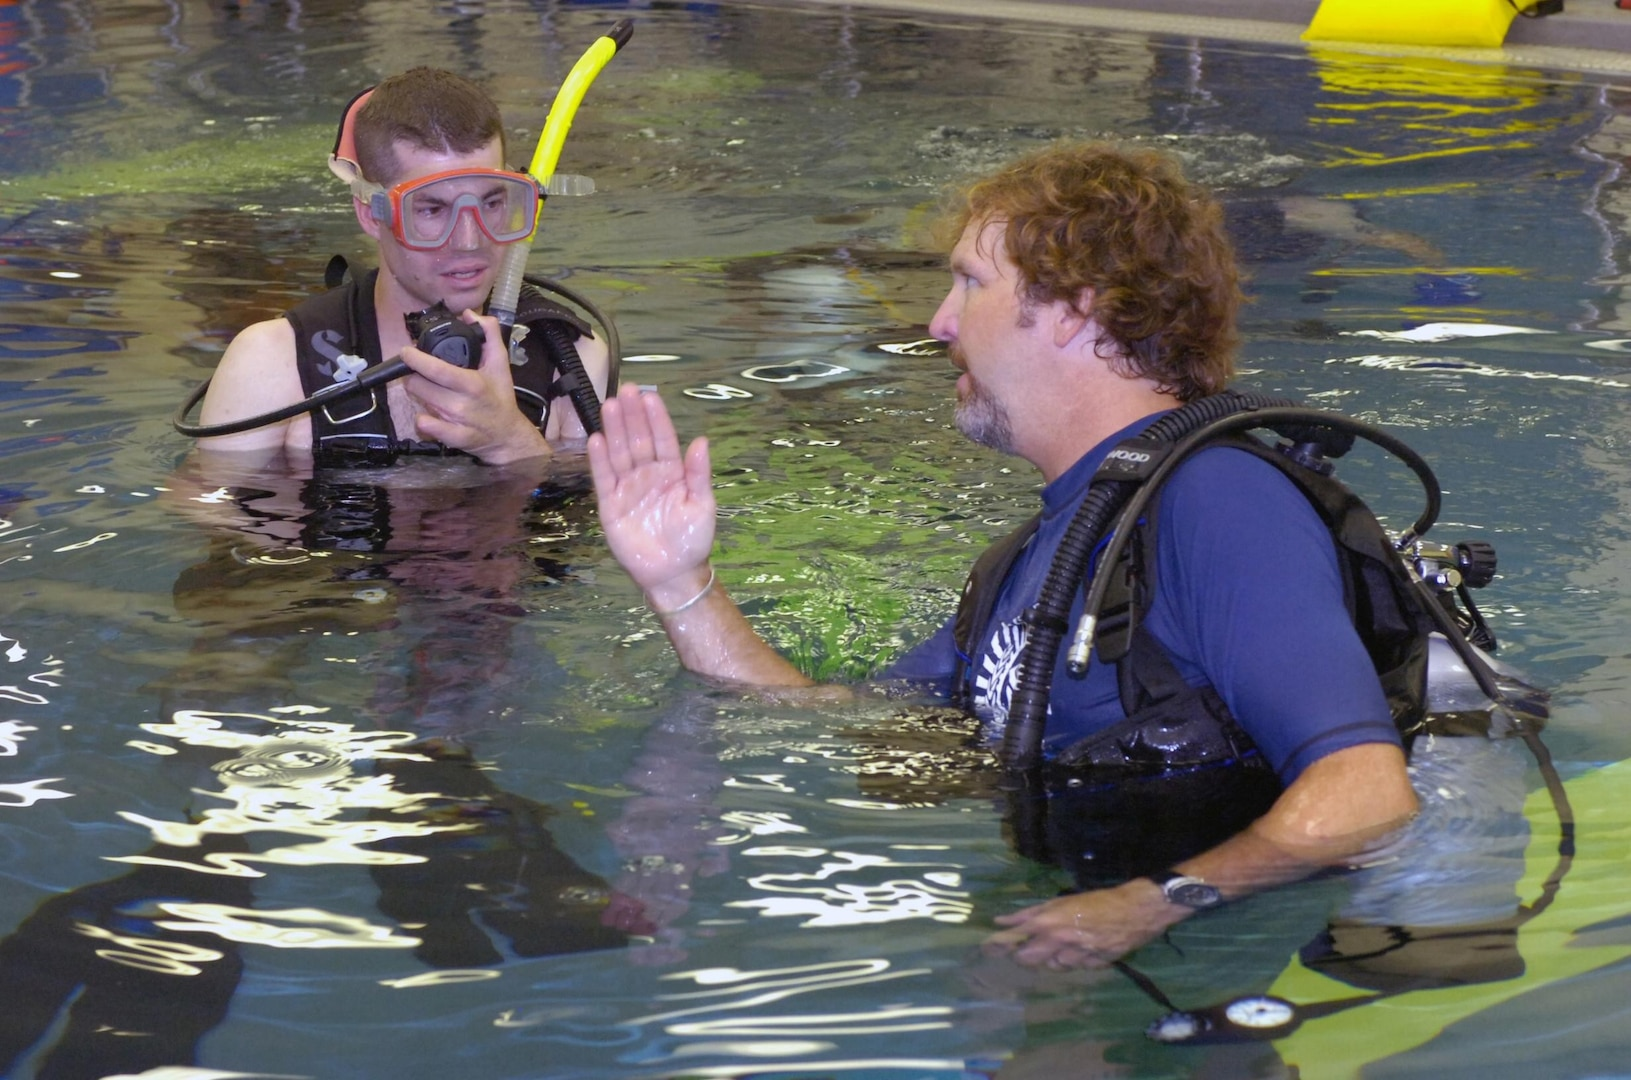 "Wisconsin Army National Guard Sgt. Darrell ""J.R."" Salzman, 27, an Infantryman who lost part of his right arm after the detonation of an explosive device near Baghdad, Iraq, on Dec. 19, 2006, learns to scuba dive from volunteer instructor John W. Thompson, a former National Guardsman, in the Soldiers Undertaking Scuba Diving (SUDS) program at Walter Reed Army Medical Center on June 7, 2007."